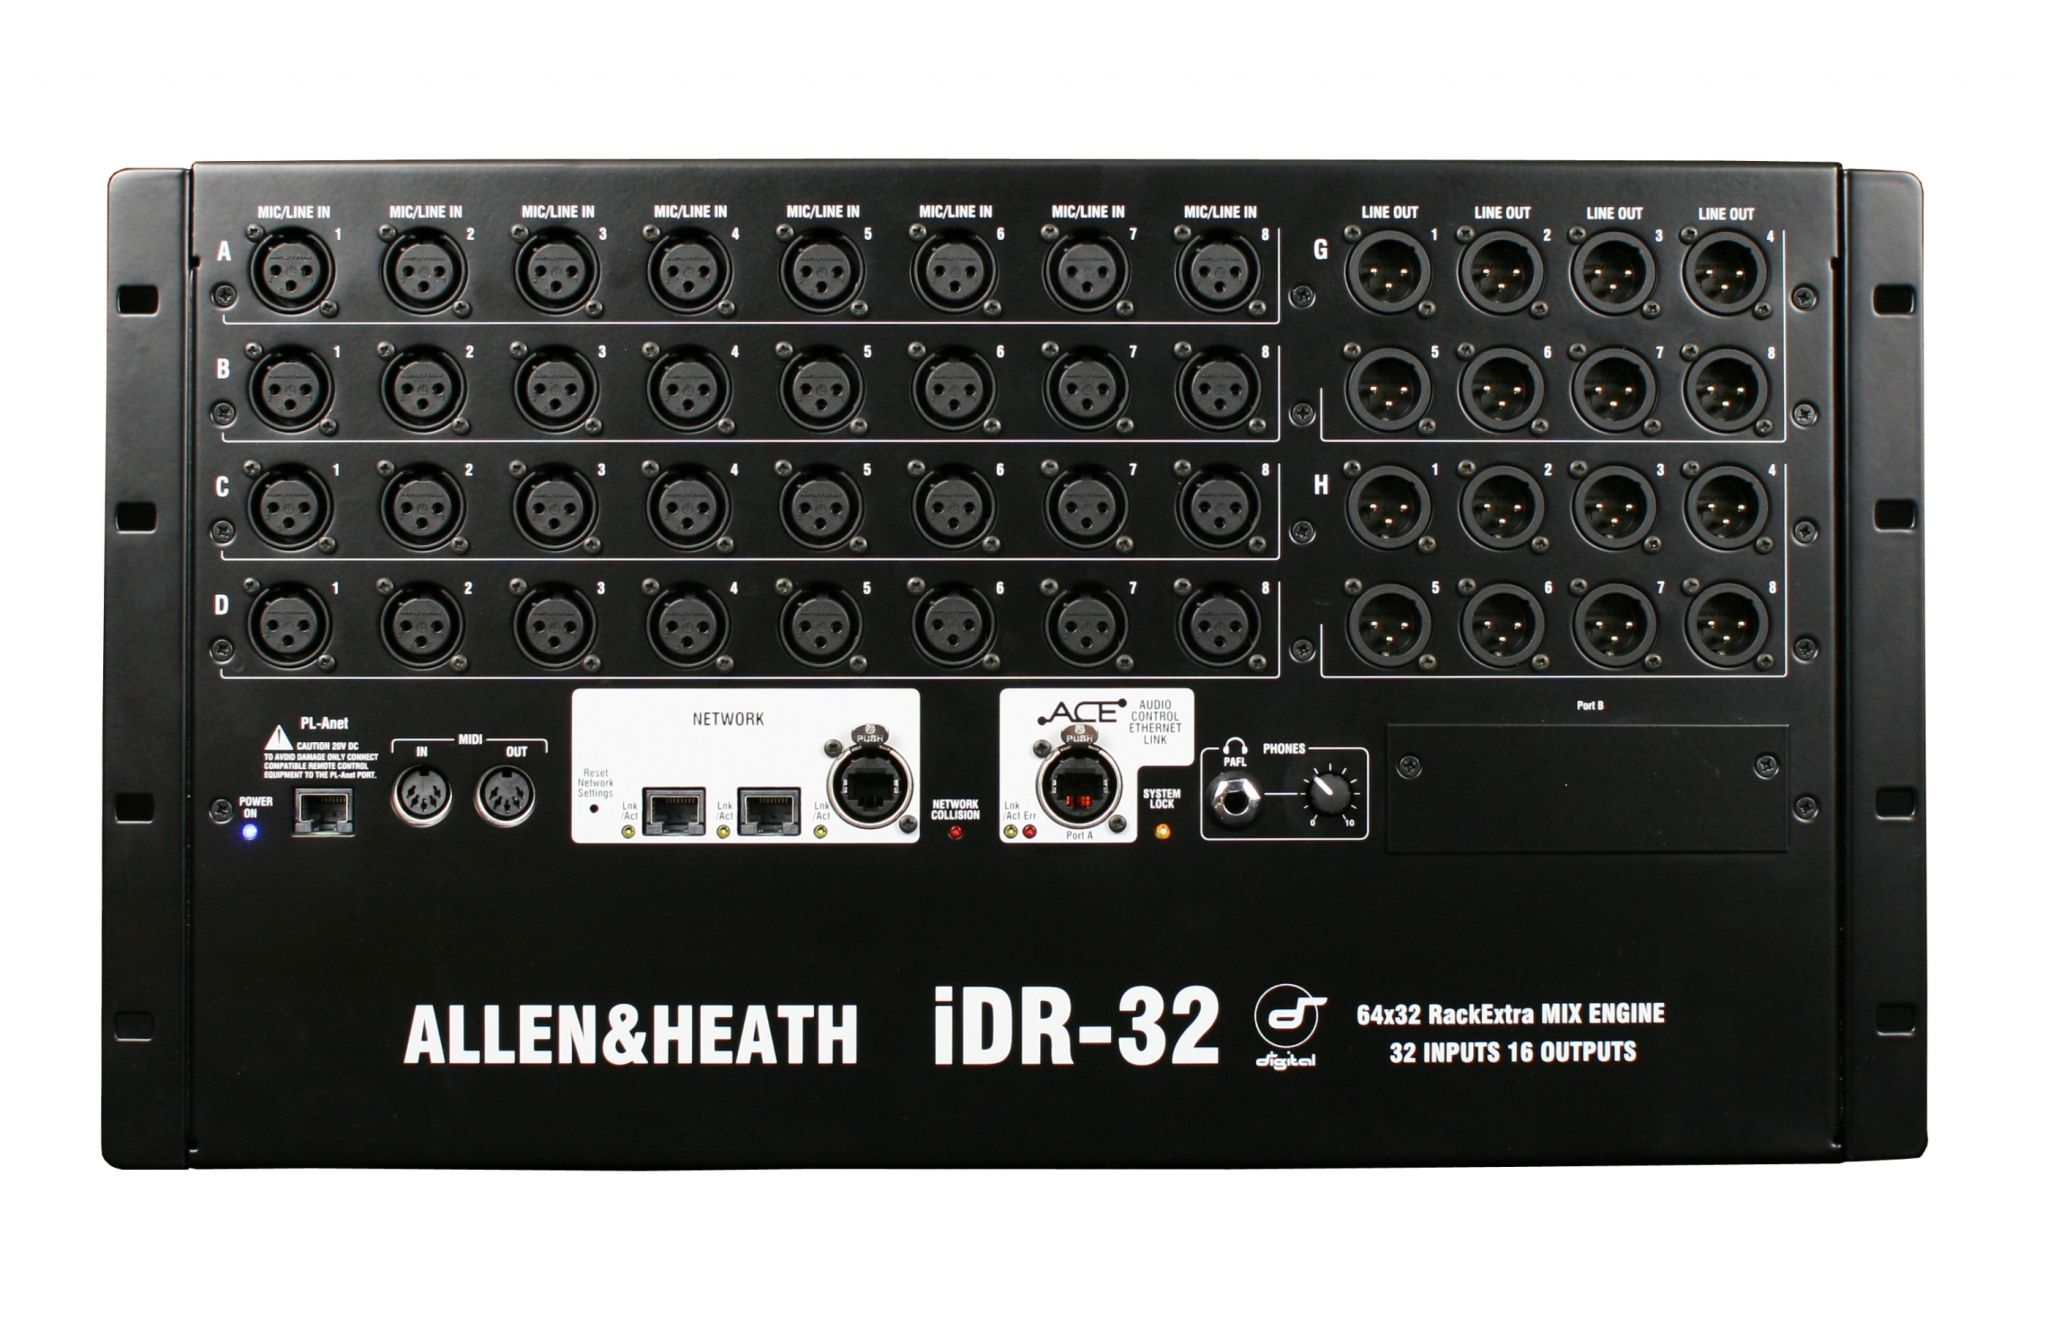 allen@heath Микшерный рэк Allen Heath iDR-32